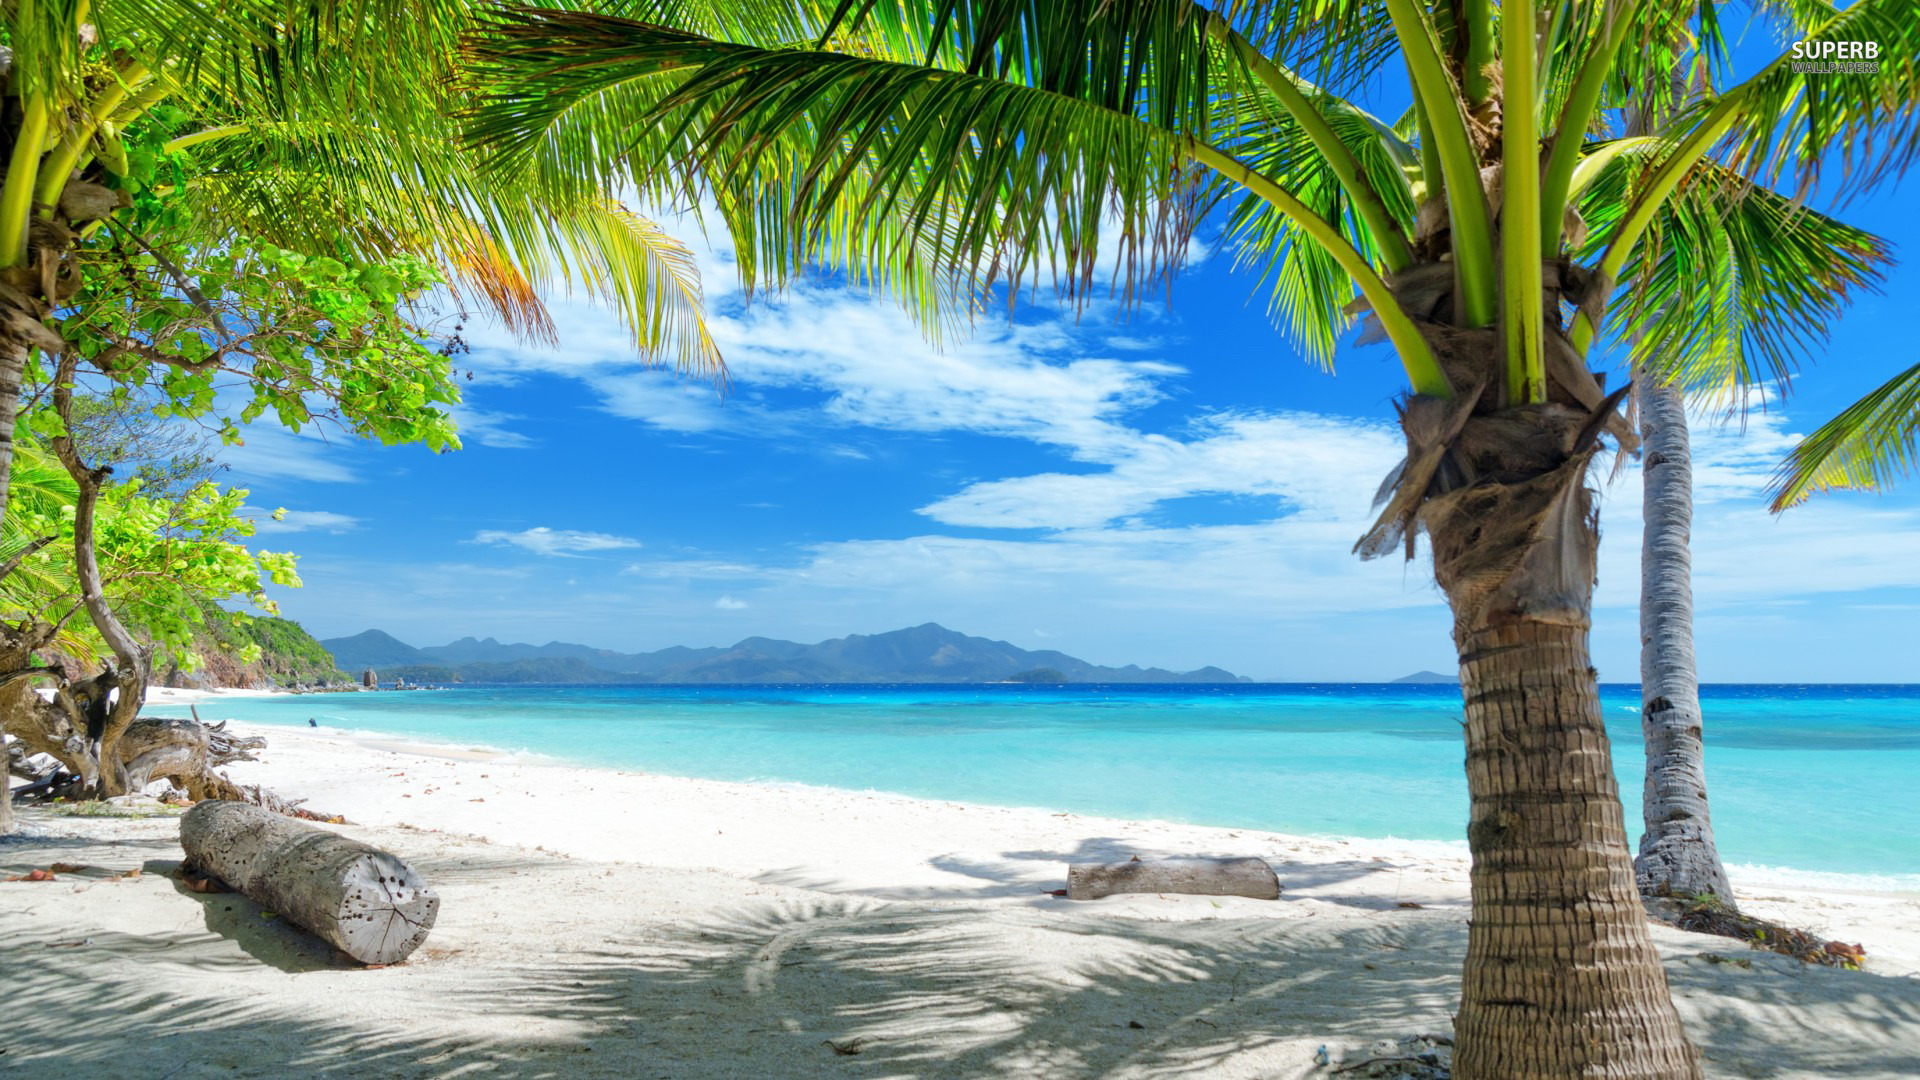 tropical beach hd wallpapers Desktop Backgrounds for 1920x1080